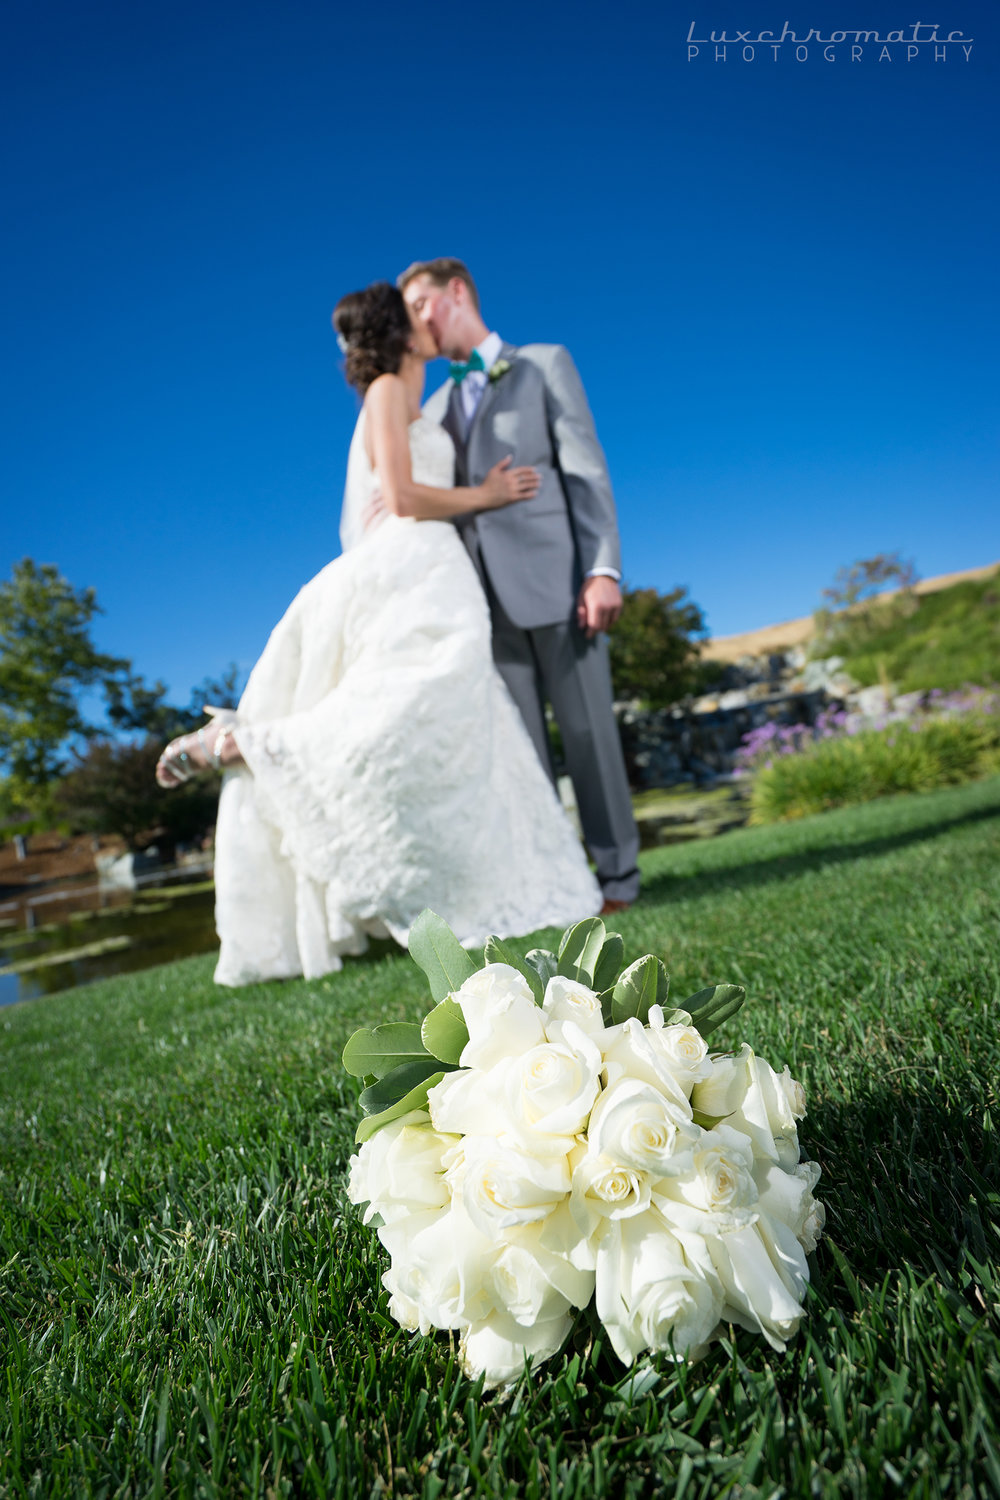 061717_Jessica_Chris-2789-luxchromatic-wedding-bride-groom-brides-sonyalpha-sonyimages-sony-sonyphotography-sanfrancisco-sf-bayarea-weddingphotography-photographer-profoto-interfit-strobe-light-speedlite-dublin-ranch-golf-course-ca-california.jpg